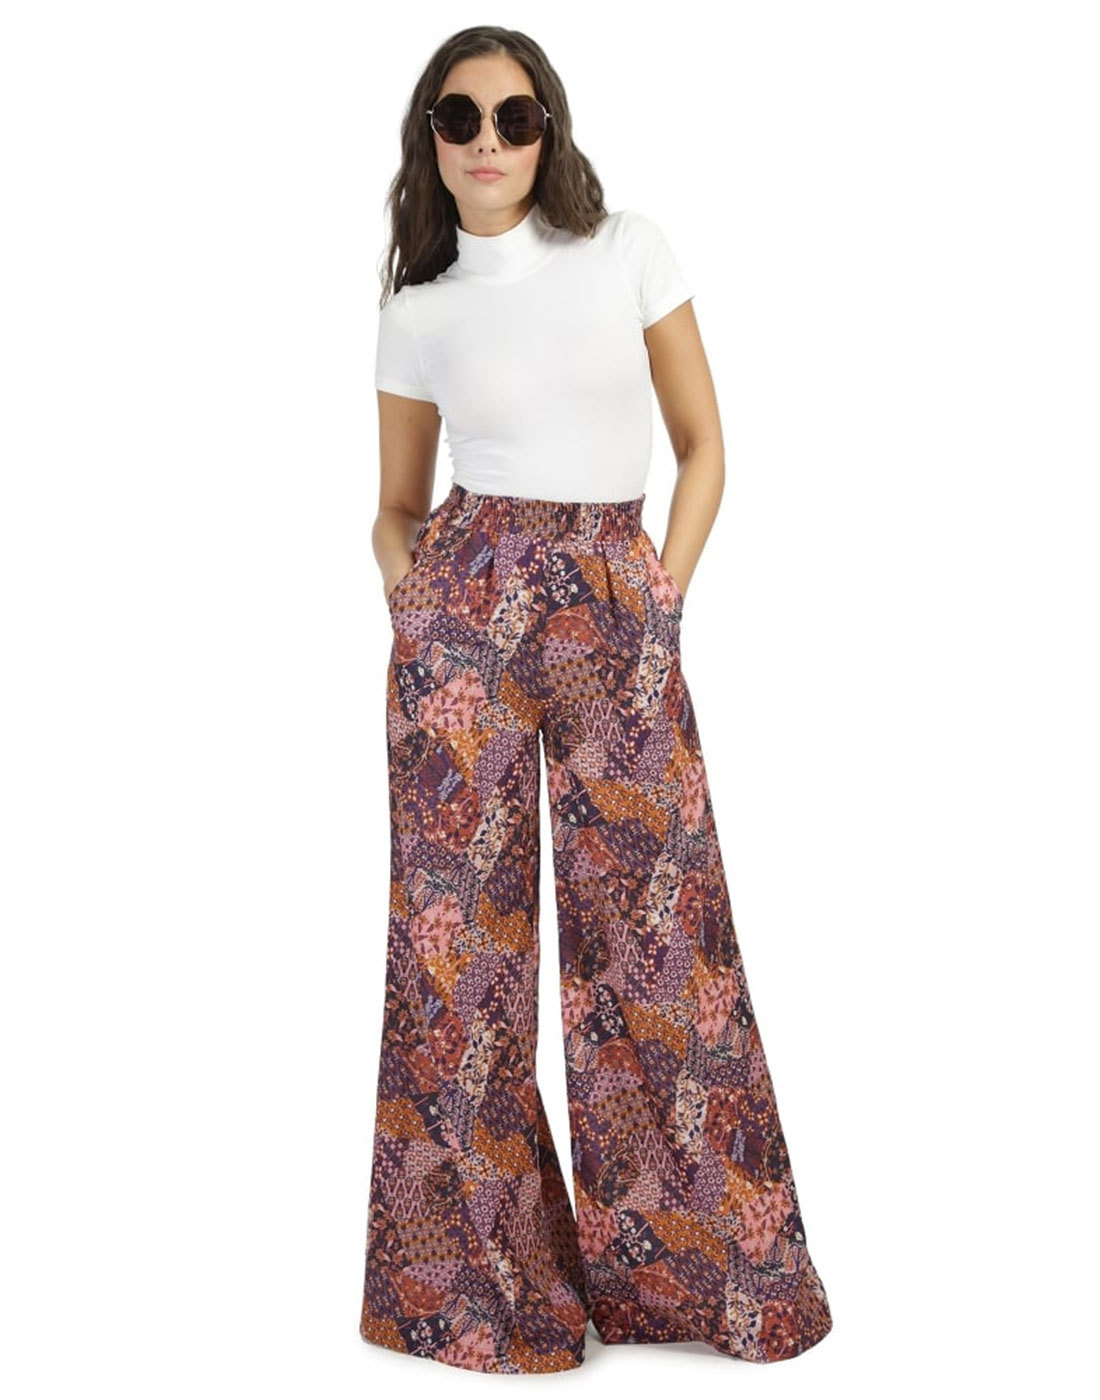 BRIGHT & BEAUTIFUL Lucy Folk Patchwork Trousers